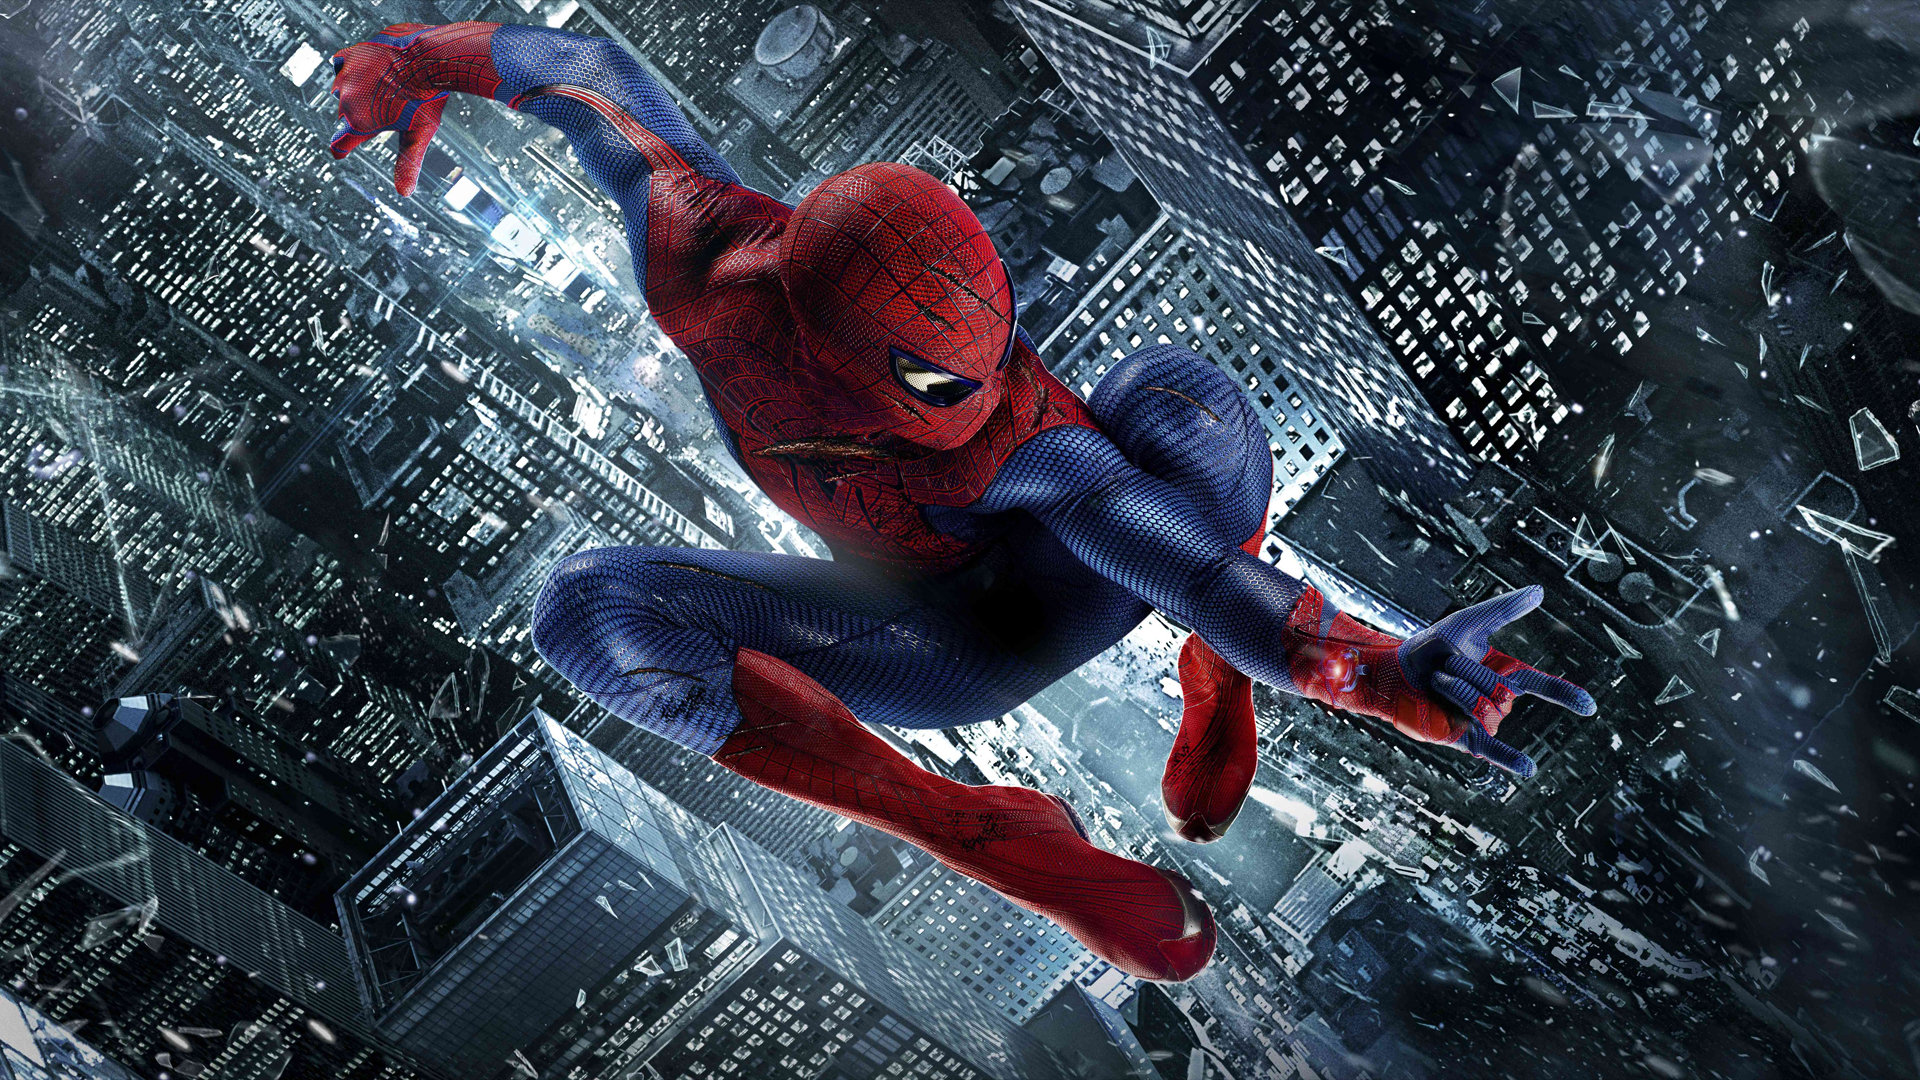 High-Resolution-Movie-The-Amazing-Spiderman-HD-Full-wallpaper-wpc5805911